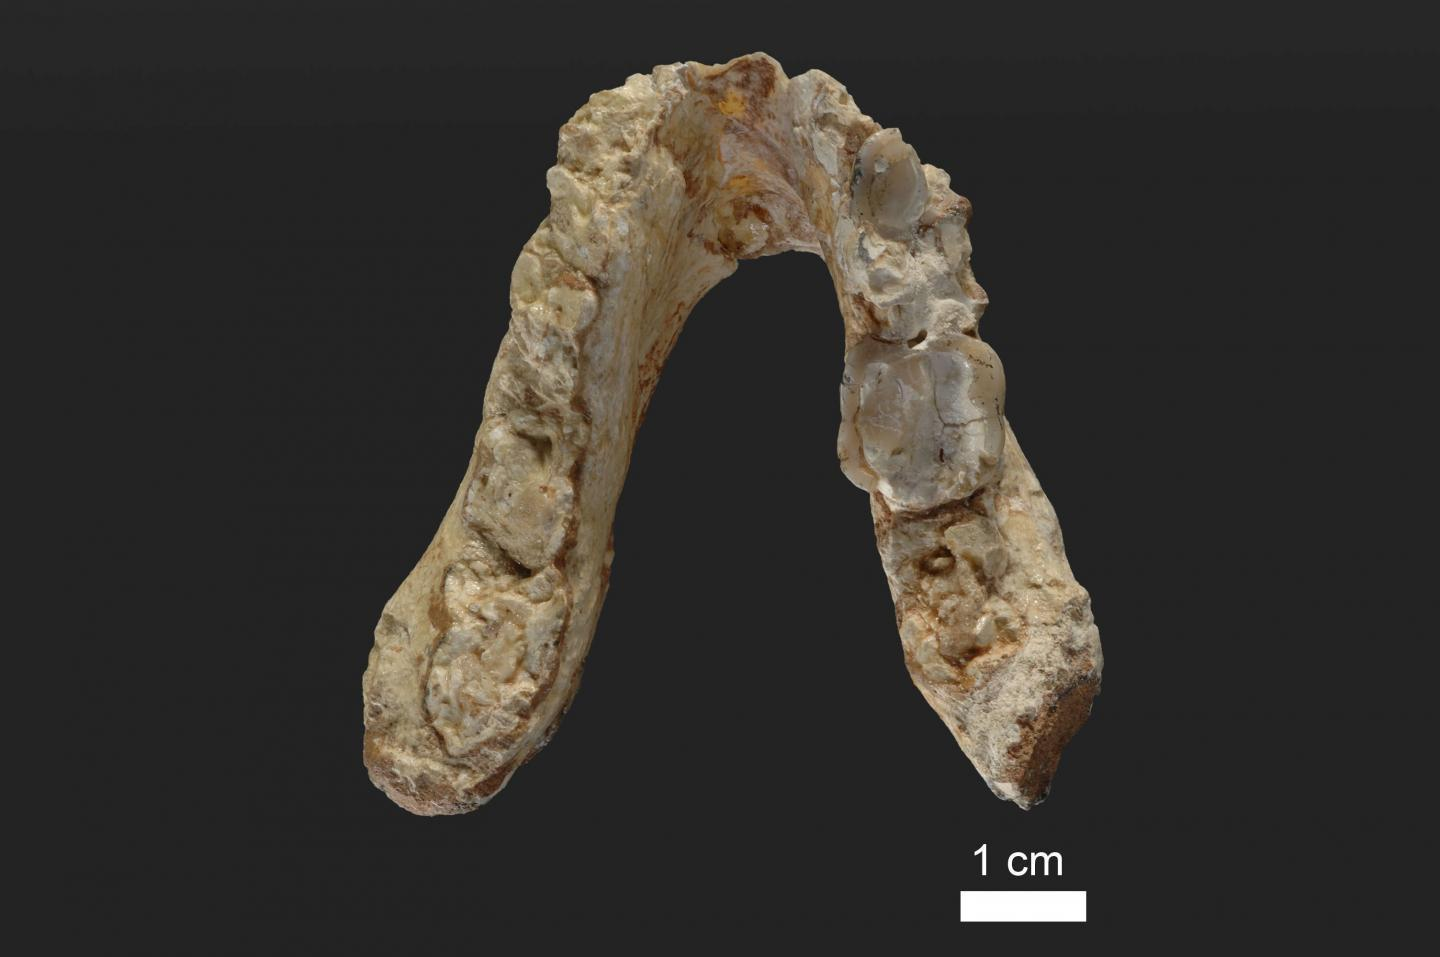 Missing link may have been European, not African, ancient fossils suggest